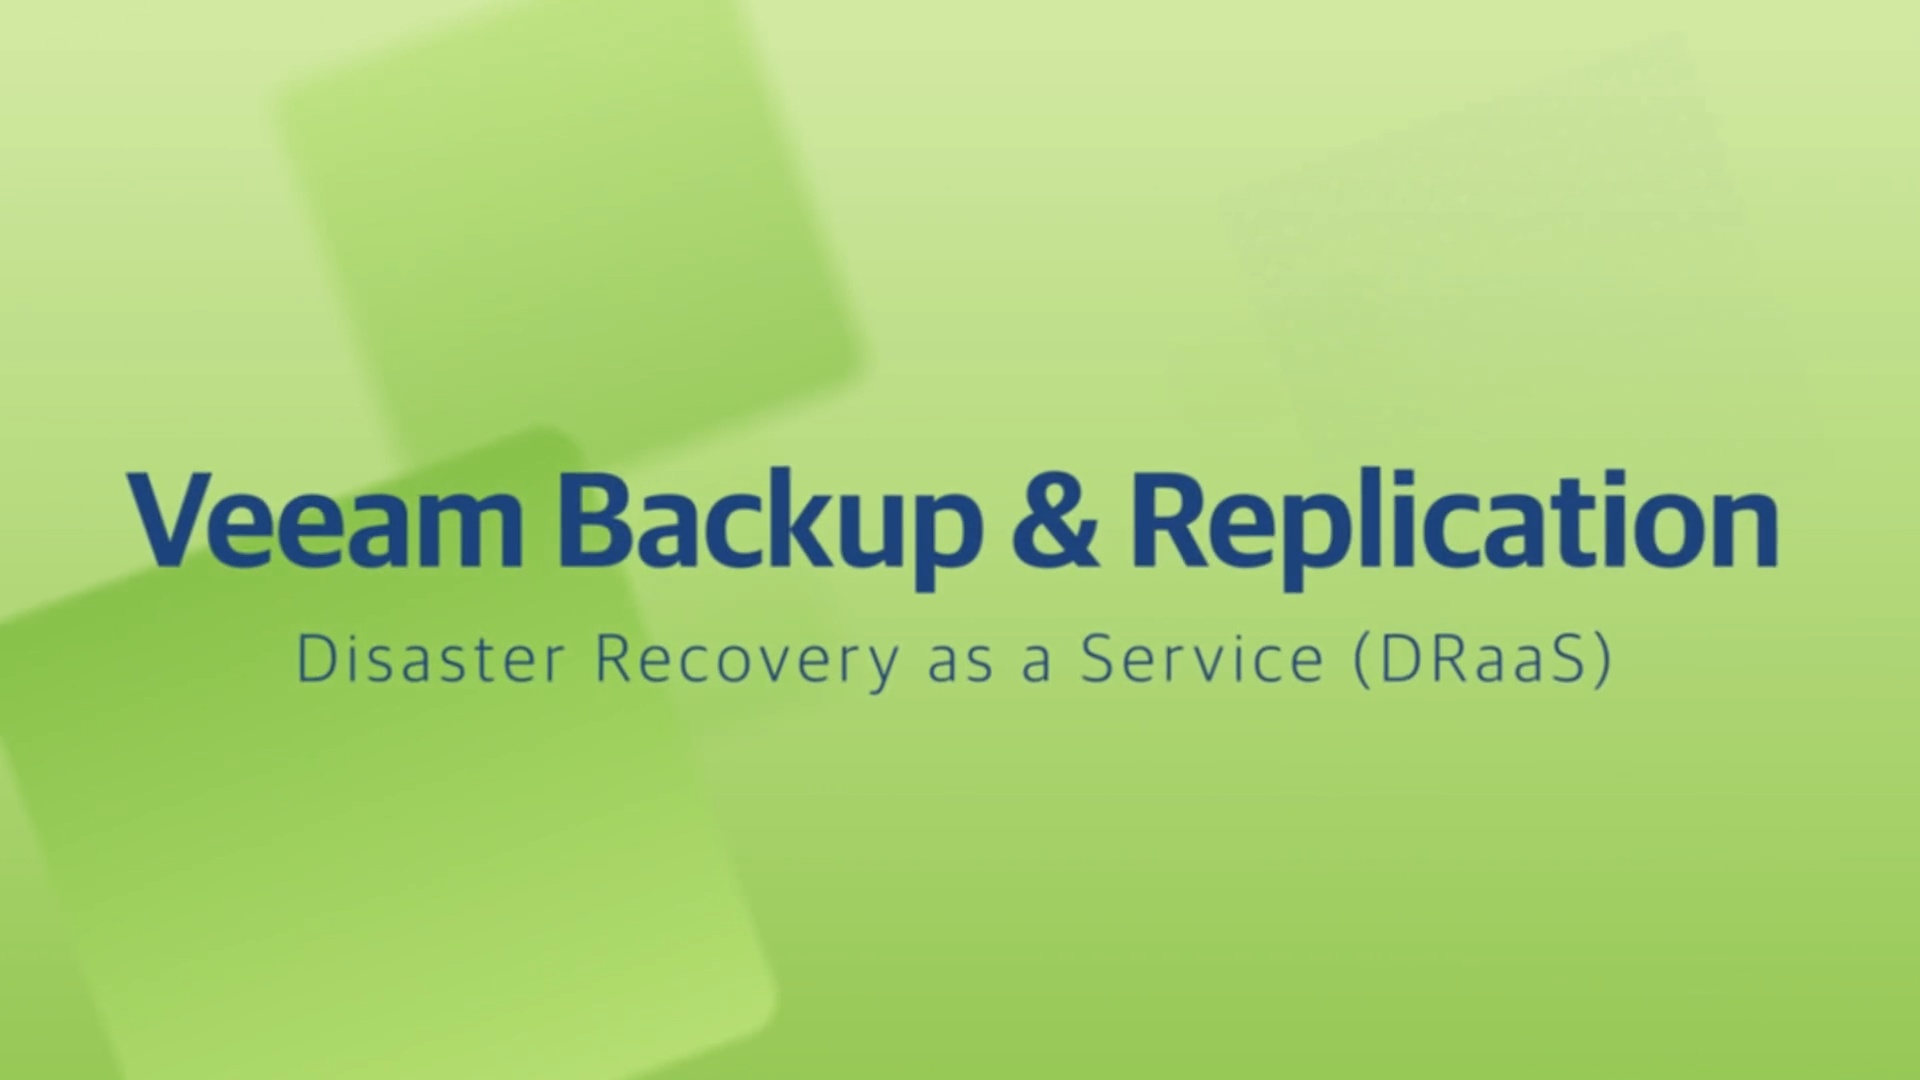 Product launch v11 - VBR - Disaster Recovery as a Service (DRaaS)